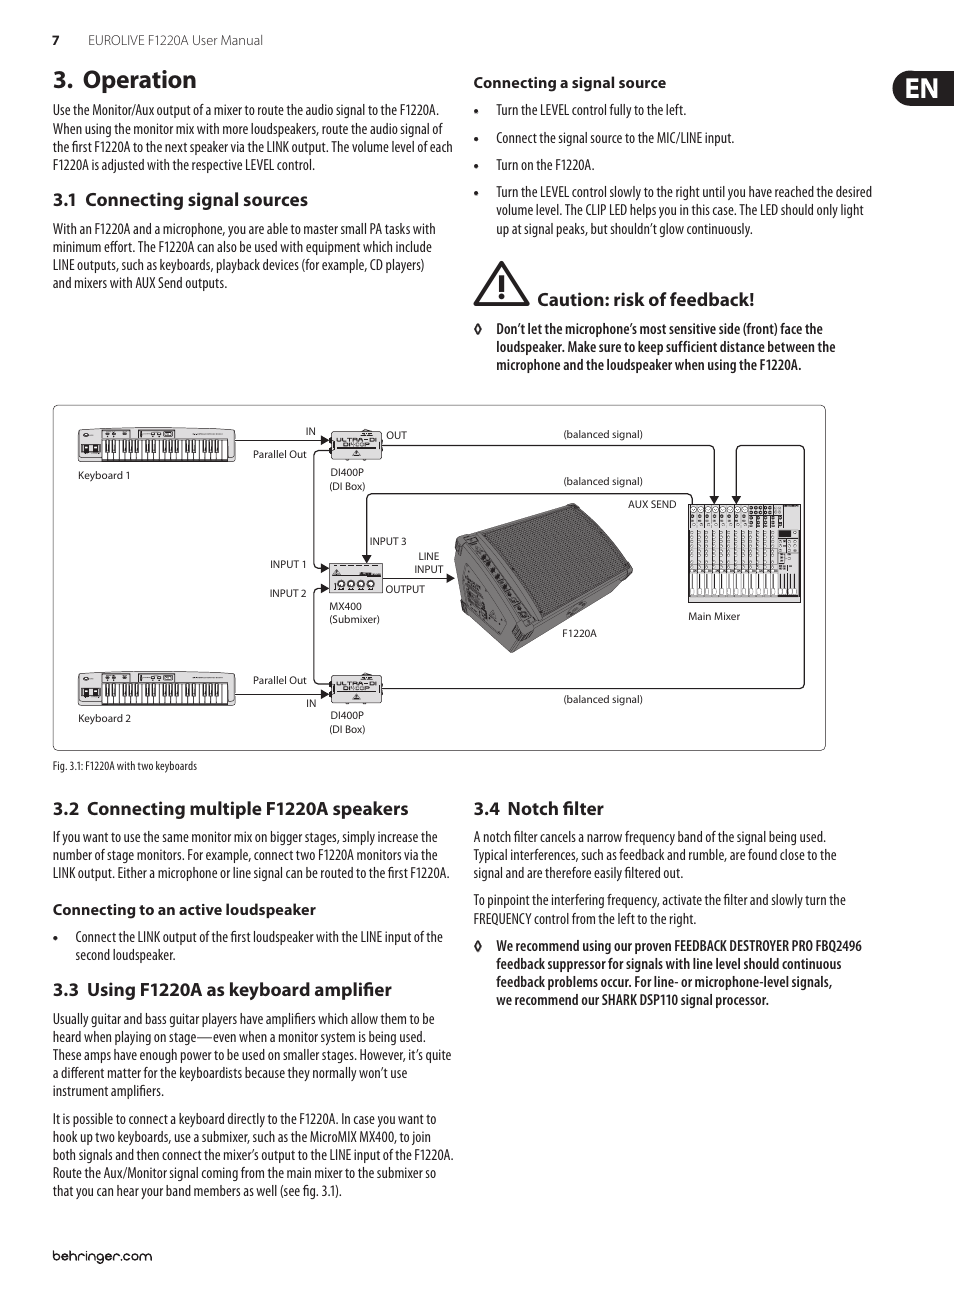 medium resolution of operation 1 connecting signal sources 2 connecting multiple f1220a speakers behringer eurolive f1220a user manual page 7 10